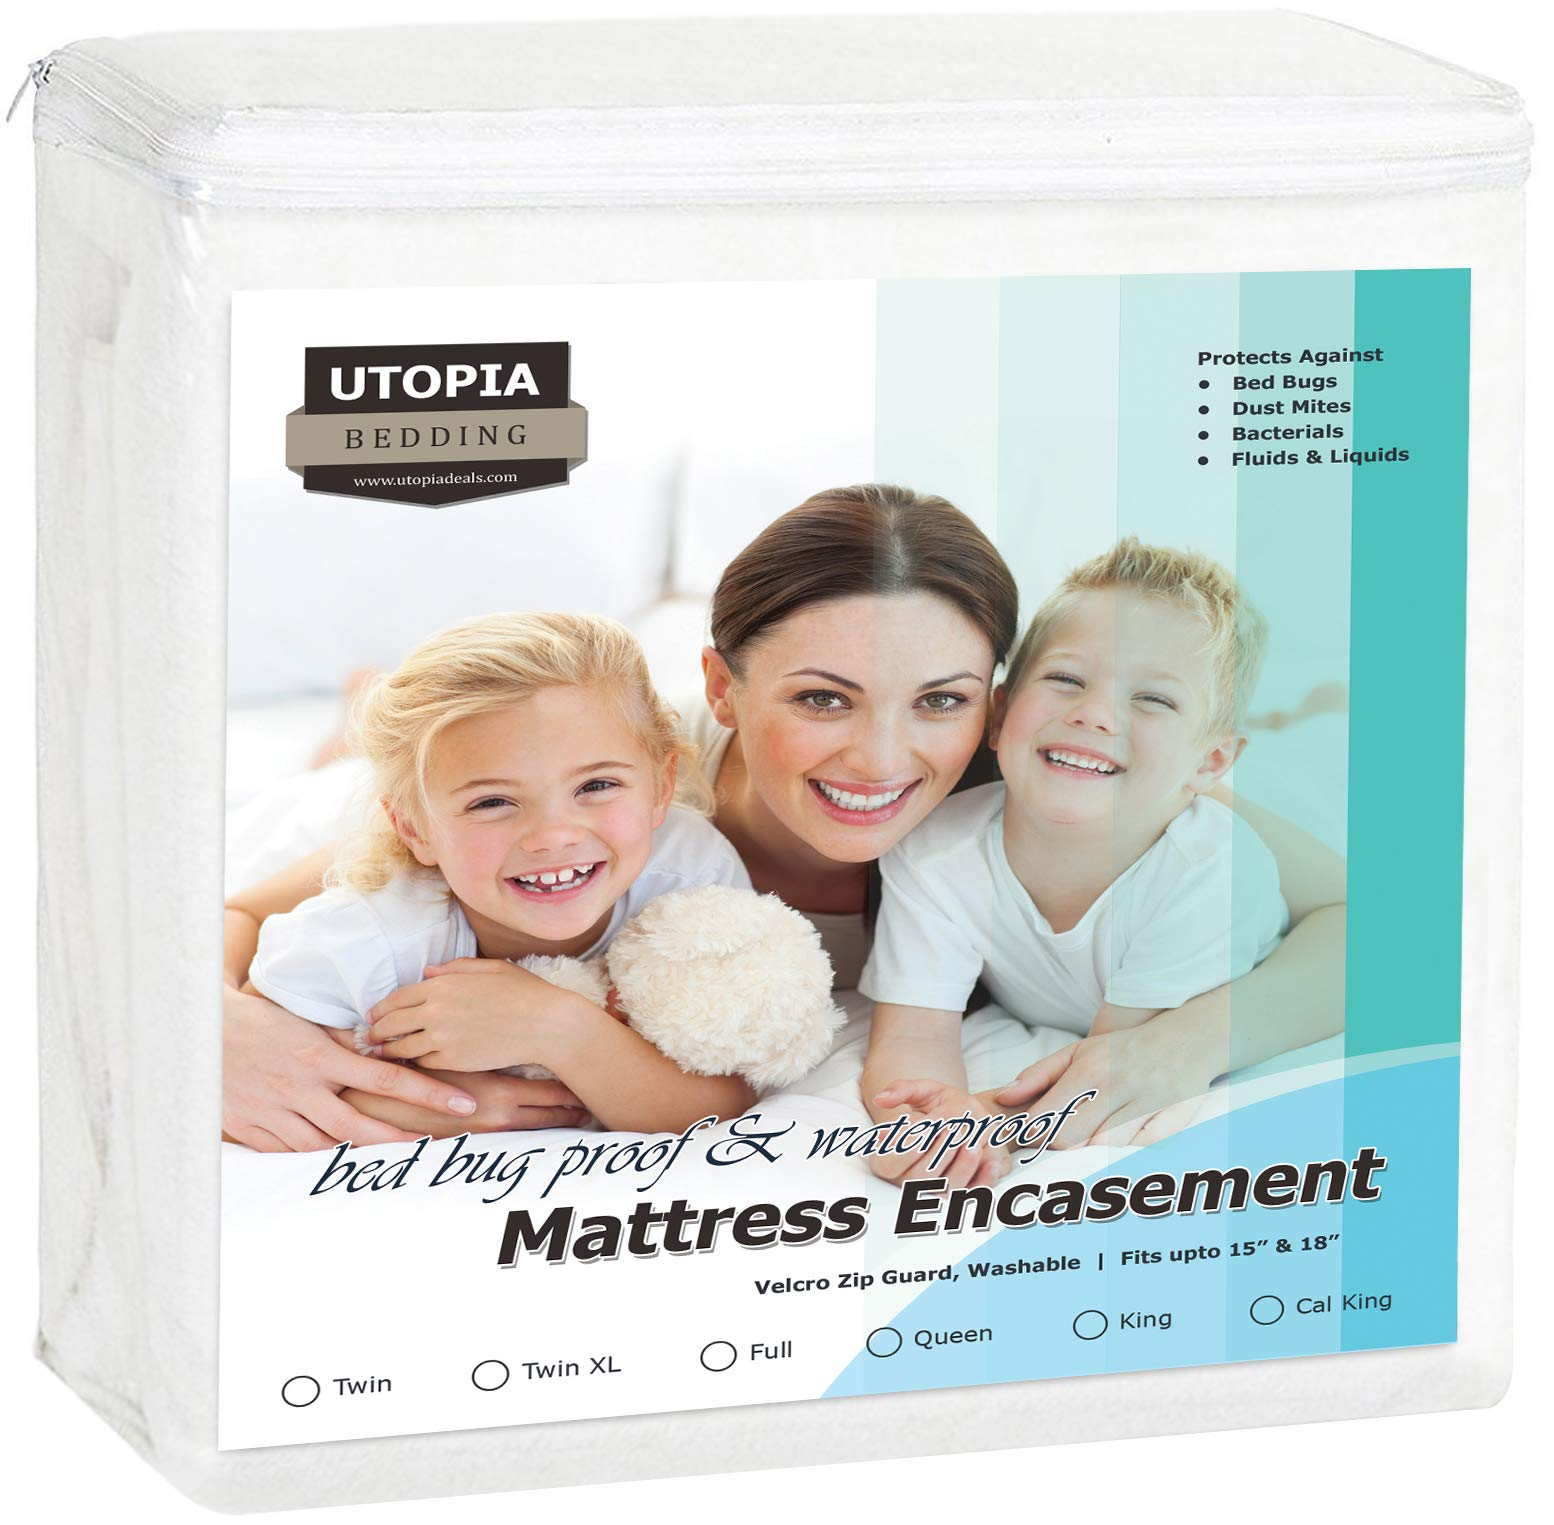 Utopia Bedding Zippered Mattress Encasement - Bed Bug Proof, Dust Mite Proof Mattress Cover - Waterproof Mattress Cover Protects from Insects Fluids (Twin) by Utopia Bedding